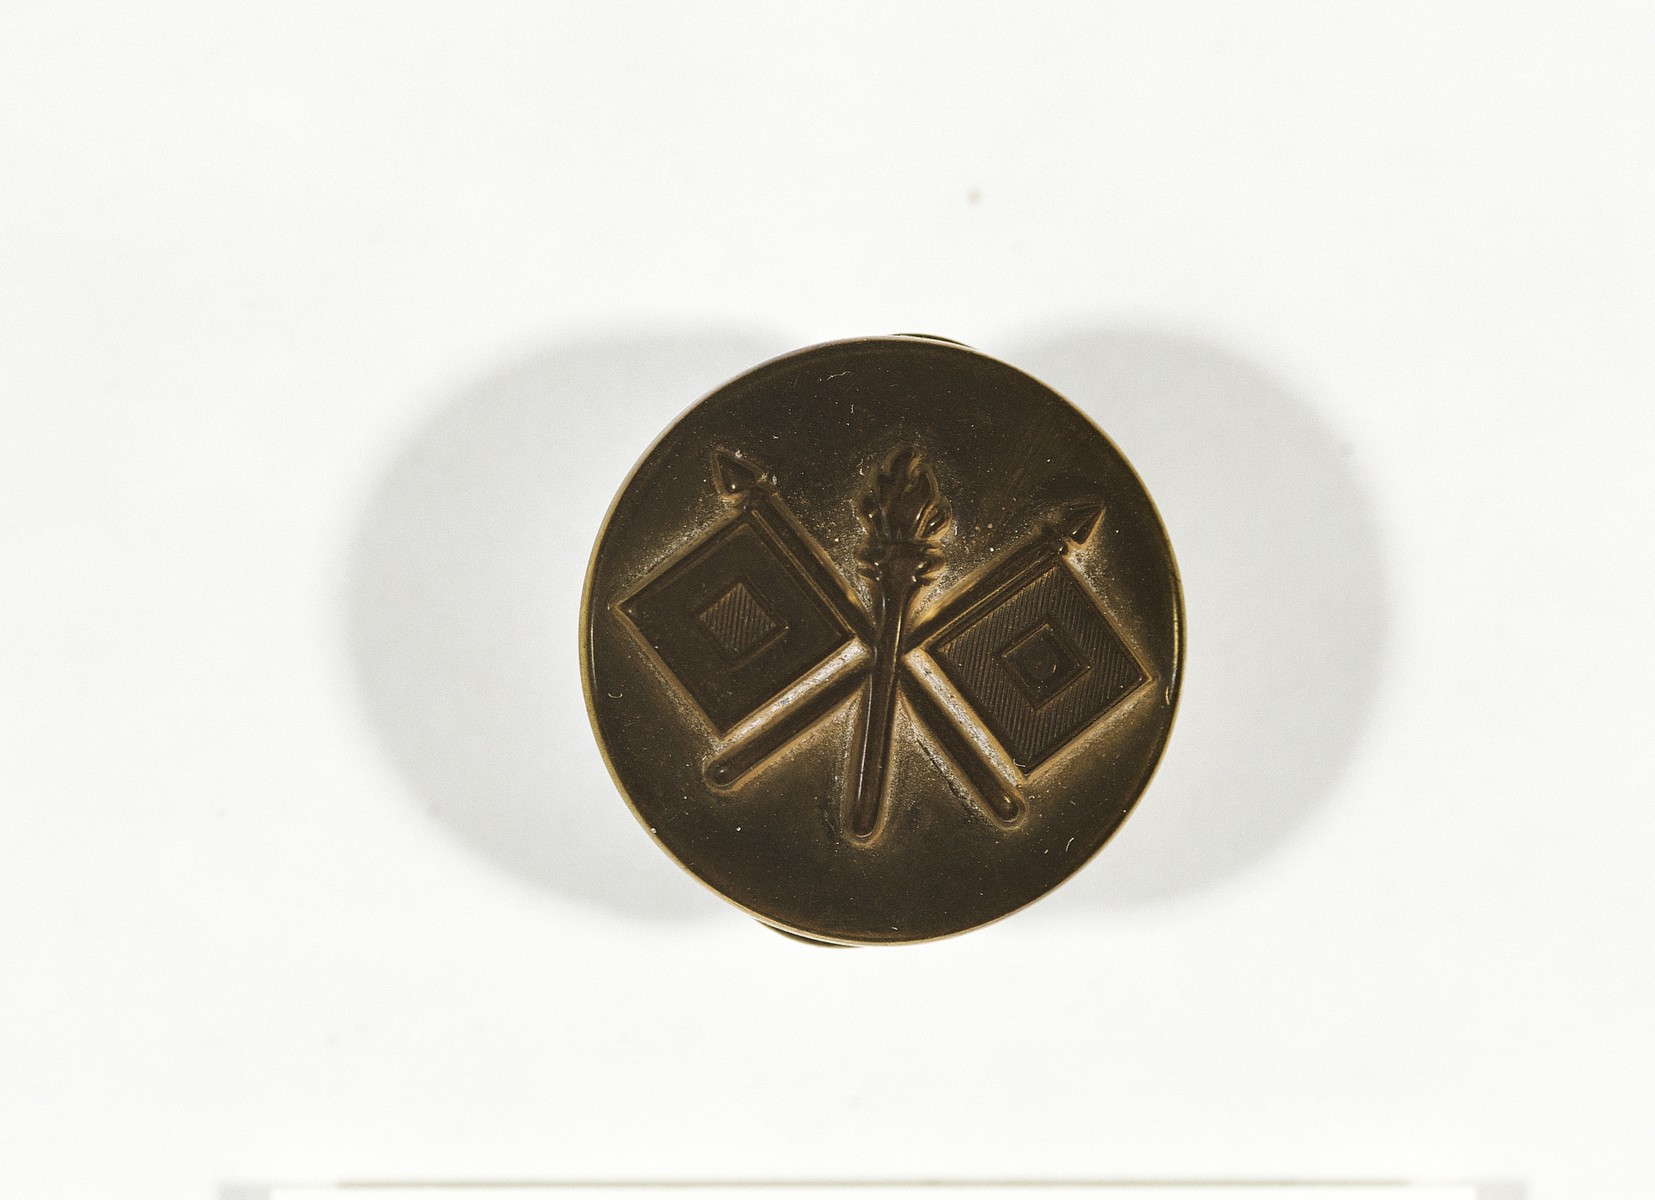 U.S. Army Signal Corps pin issued to combat photographer Arnold E. Samuelson.